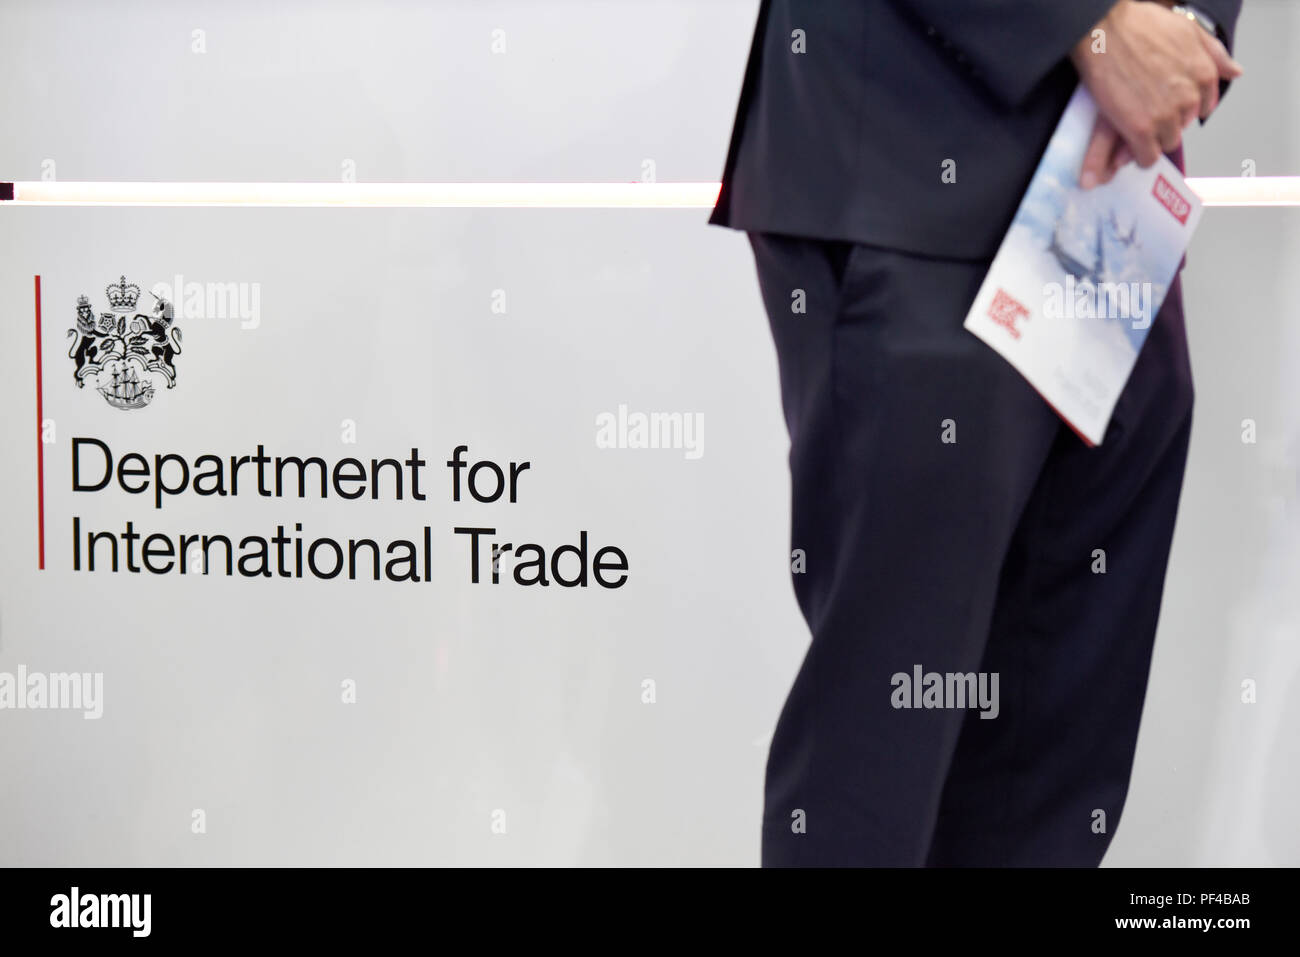 department-for-international-trade-dit-at-the-farnborough-international-airshow-fia-aviation-aerospace-trade-show-brexit-government-department-PF4BAB.jpg